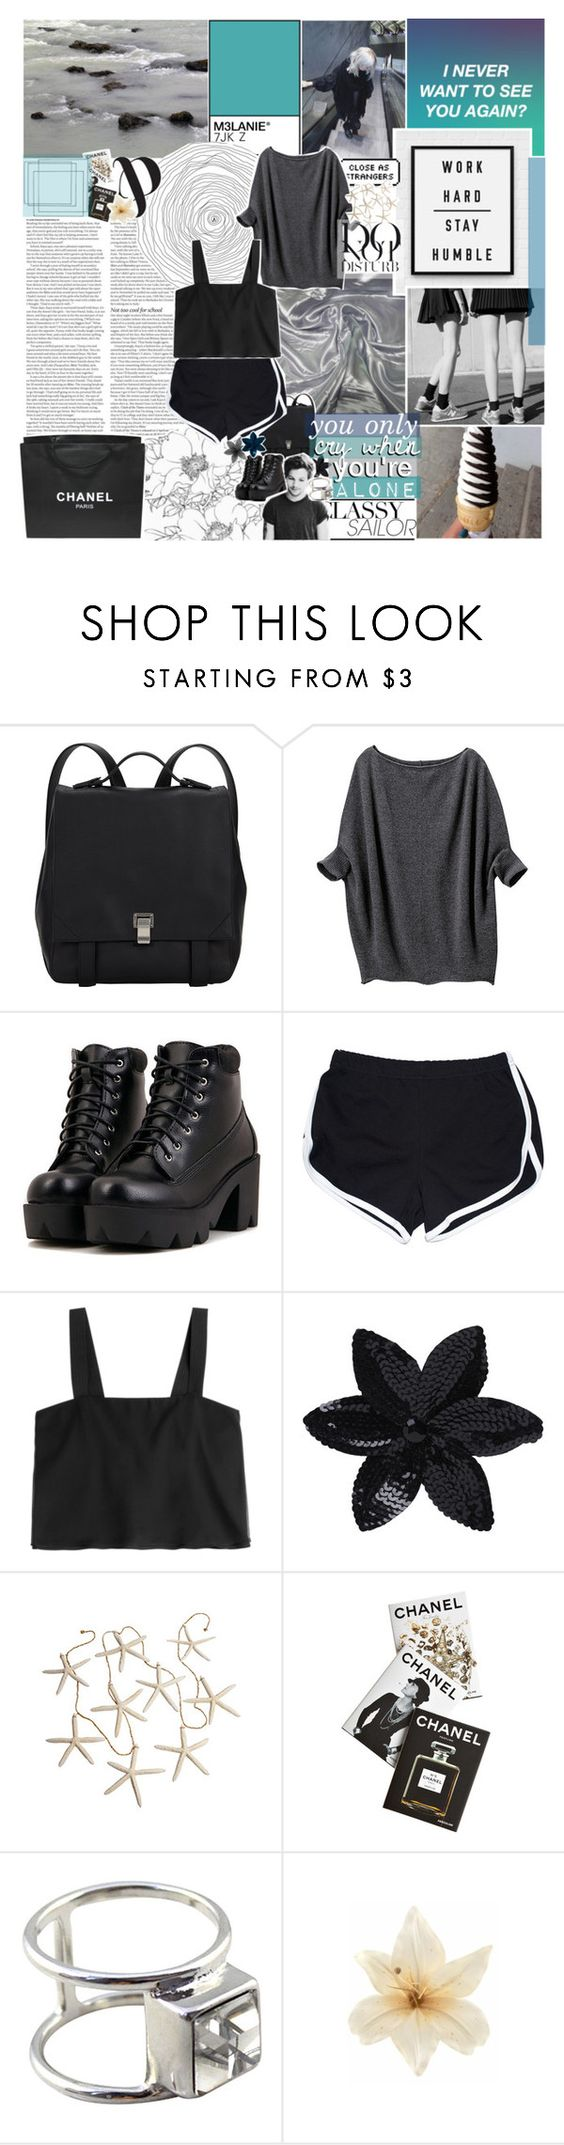 """DON'T NEED AN APOLOGY"" by pheachy ❤ liked on Polyvore featuring ASOS, Chanel, Krystal, Proenza Schouler, Uniqlo, 3.1 Phillip Lim, Assouline Publishing, Anja and Clips"